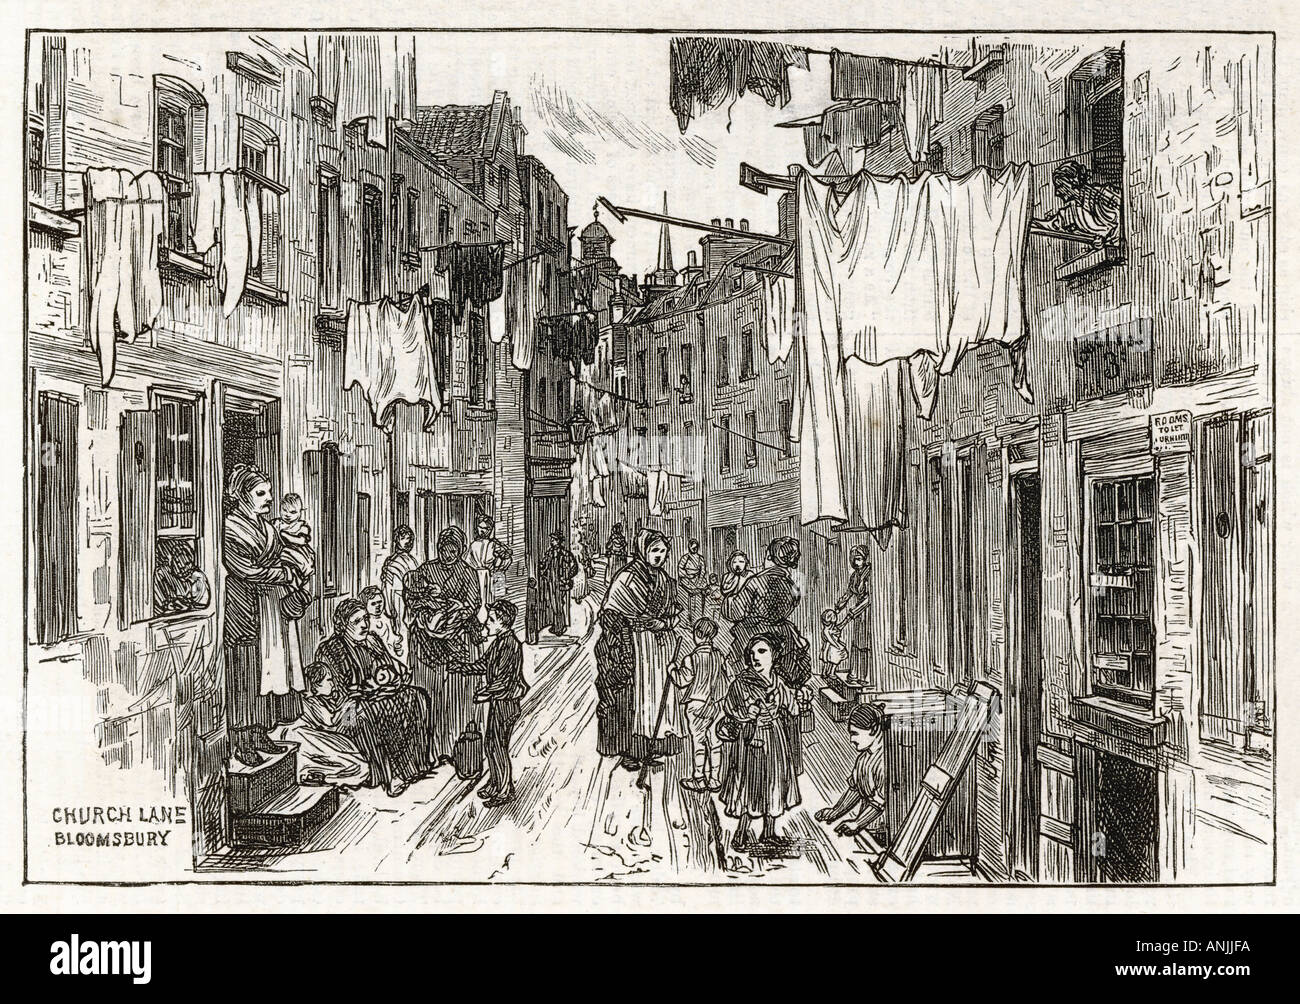 Church Lane Slum 1875 - Stock Image